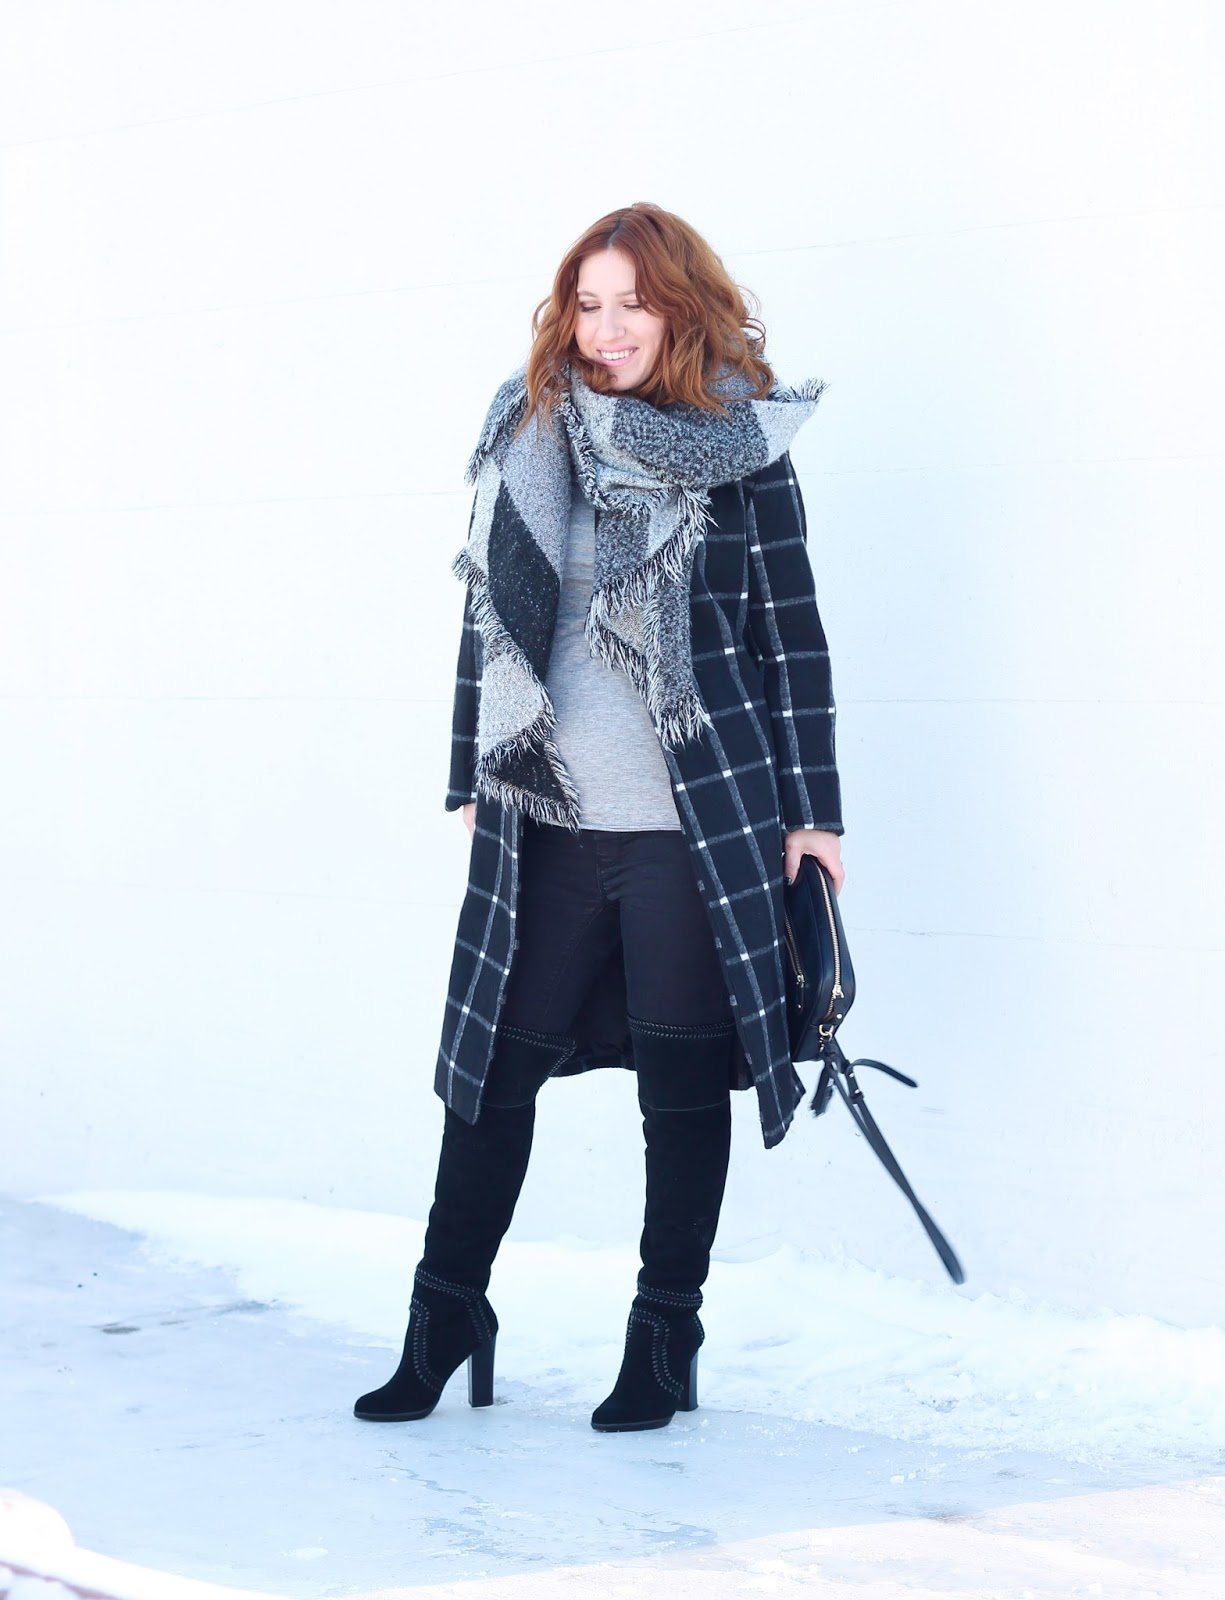 plaid, winter coats, plaid coats, style, maternity, pregnancy style, maternity coats